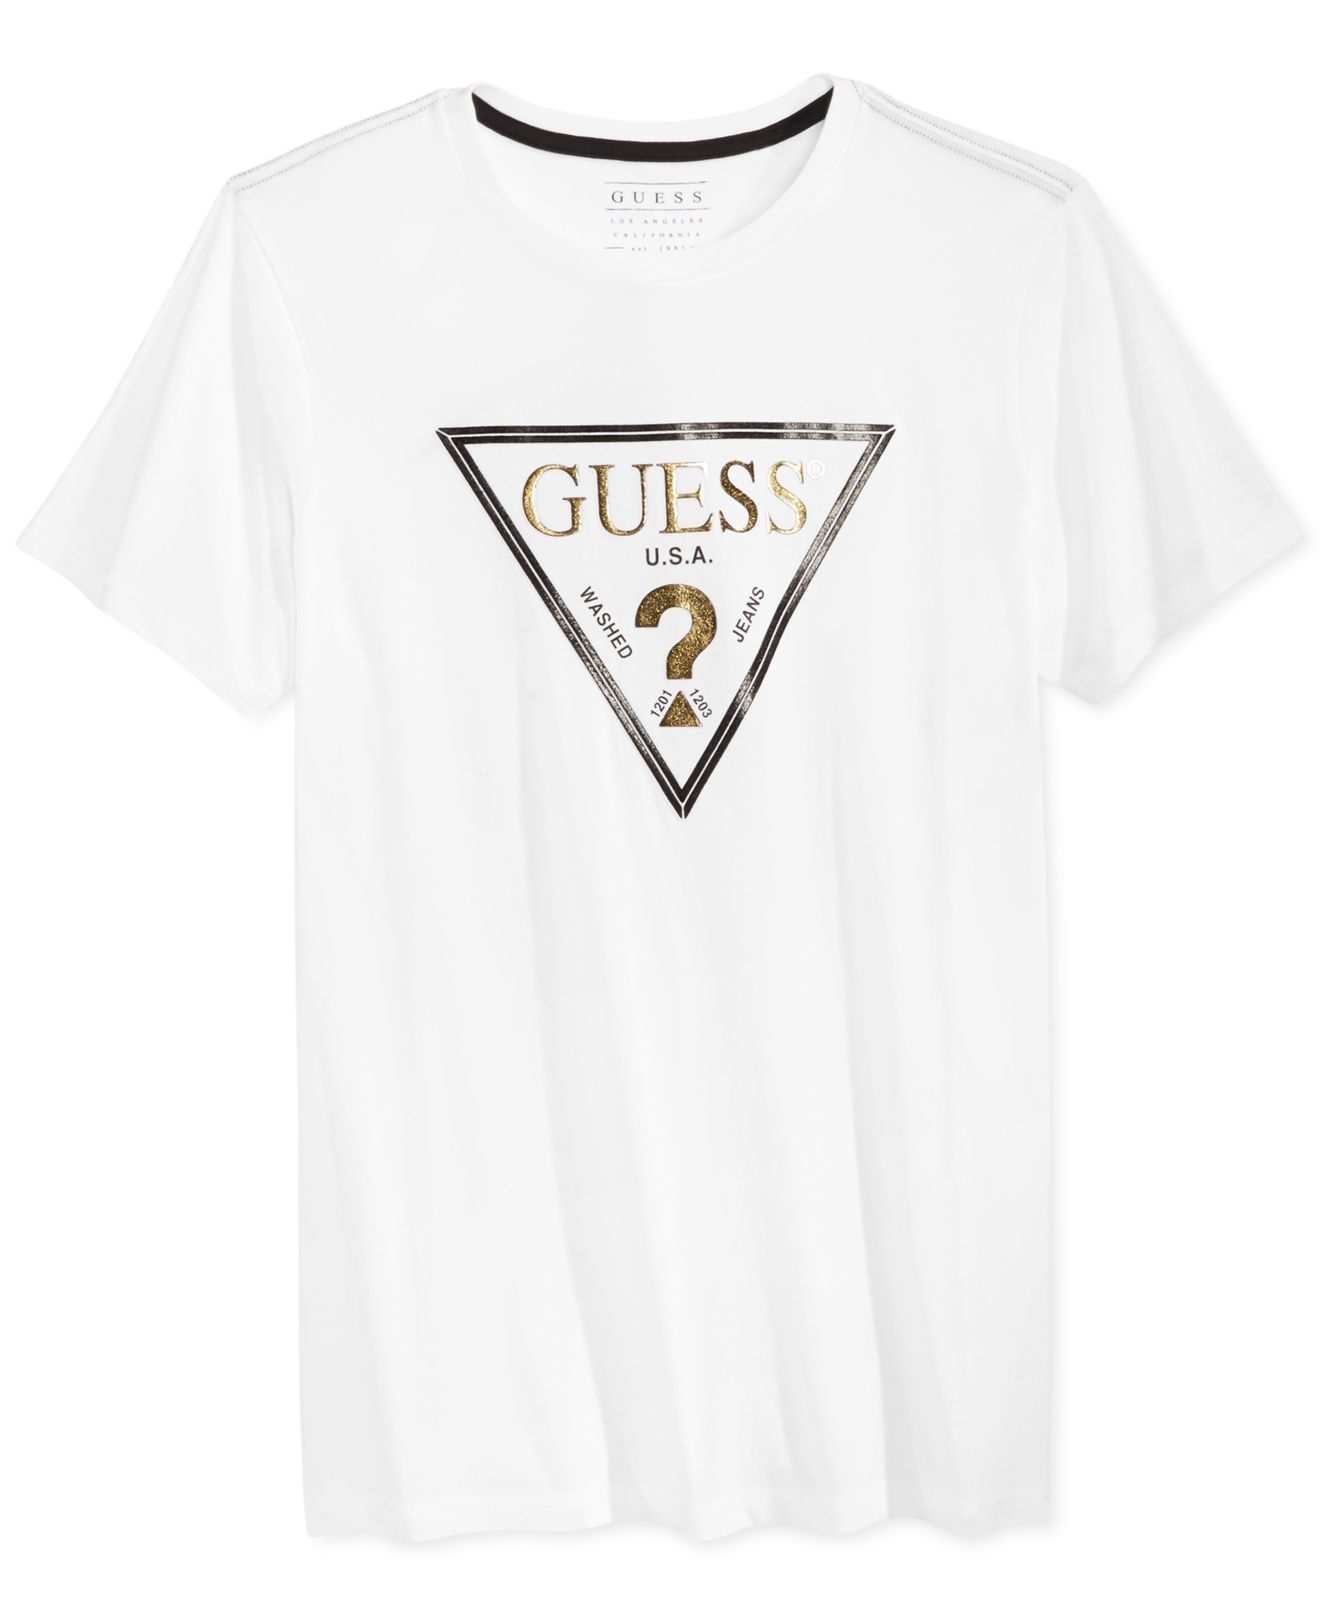 a8e4af6b Mens Guess White T Shirt | RLDM